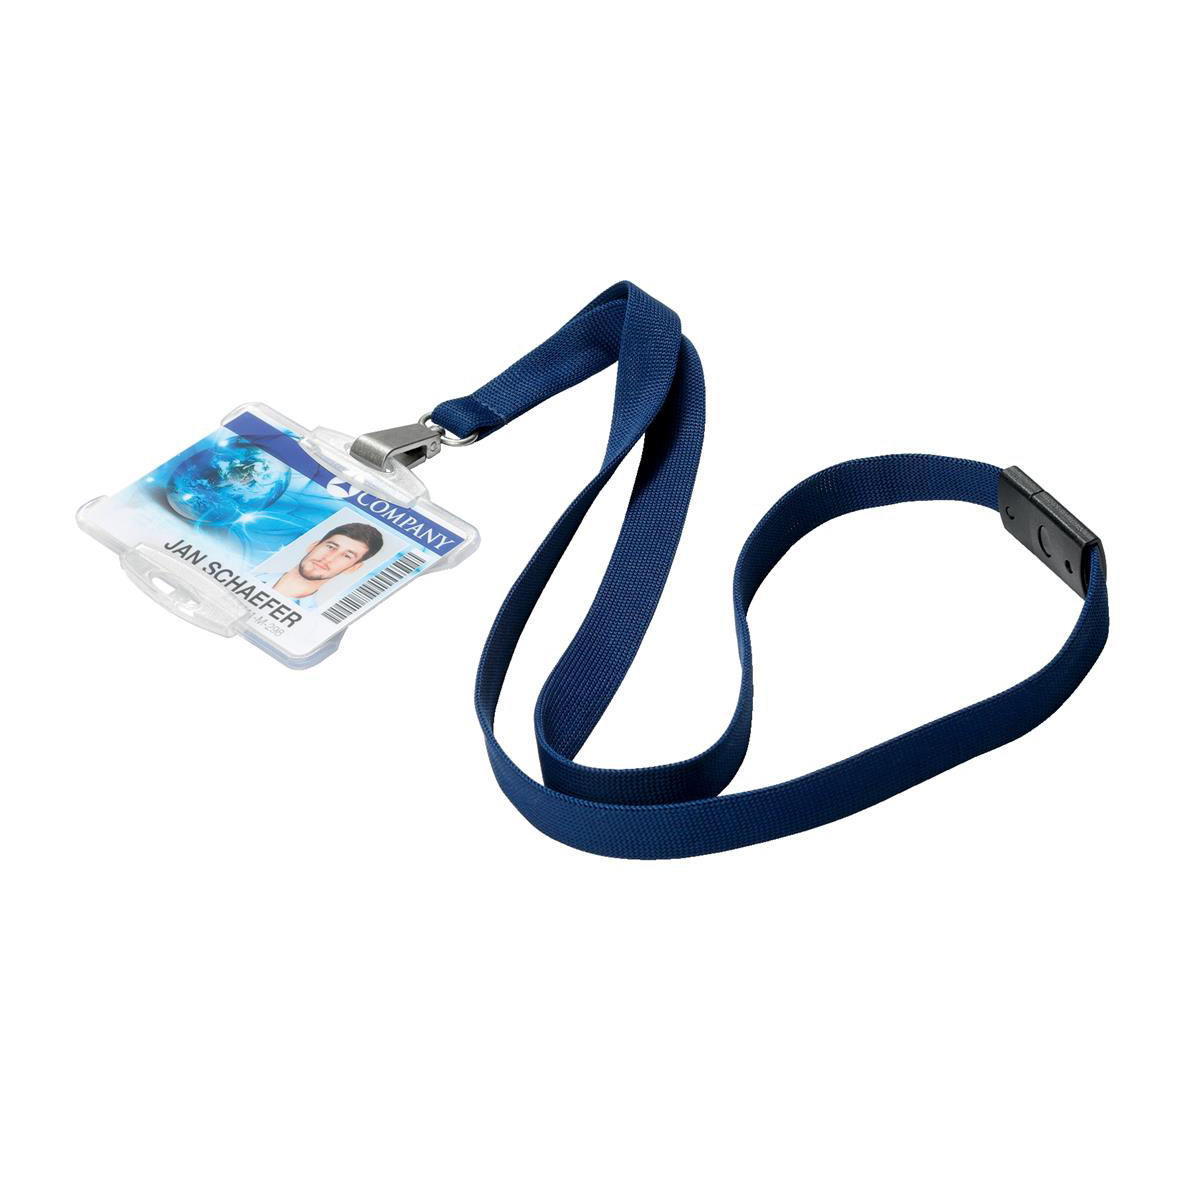 Durable Soft Textile Lanyard 15mmx440mm with 12mm Metal Snap Hook Midnight Blue Ref 812728 Pack 10